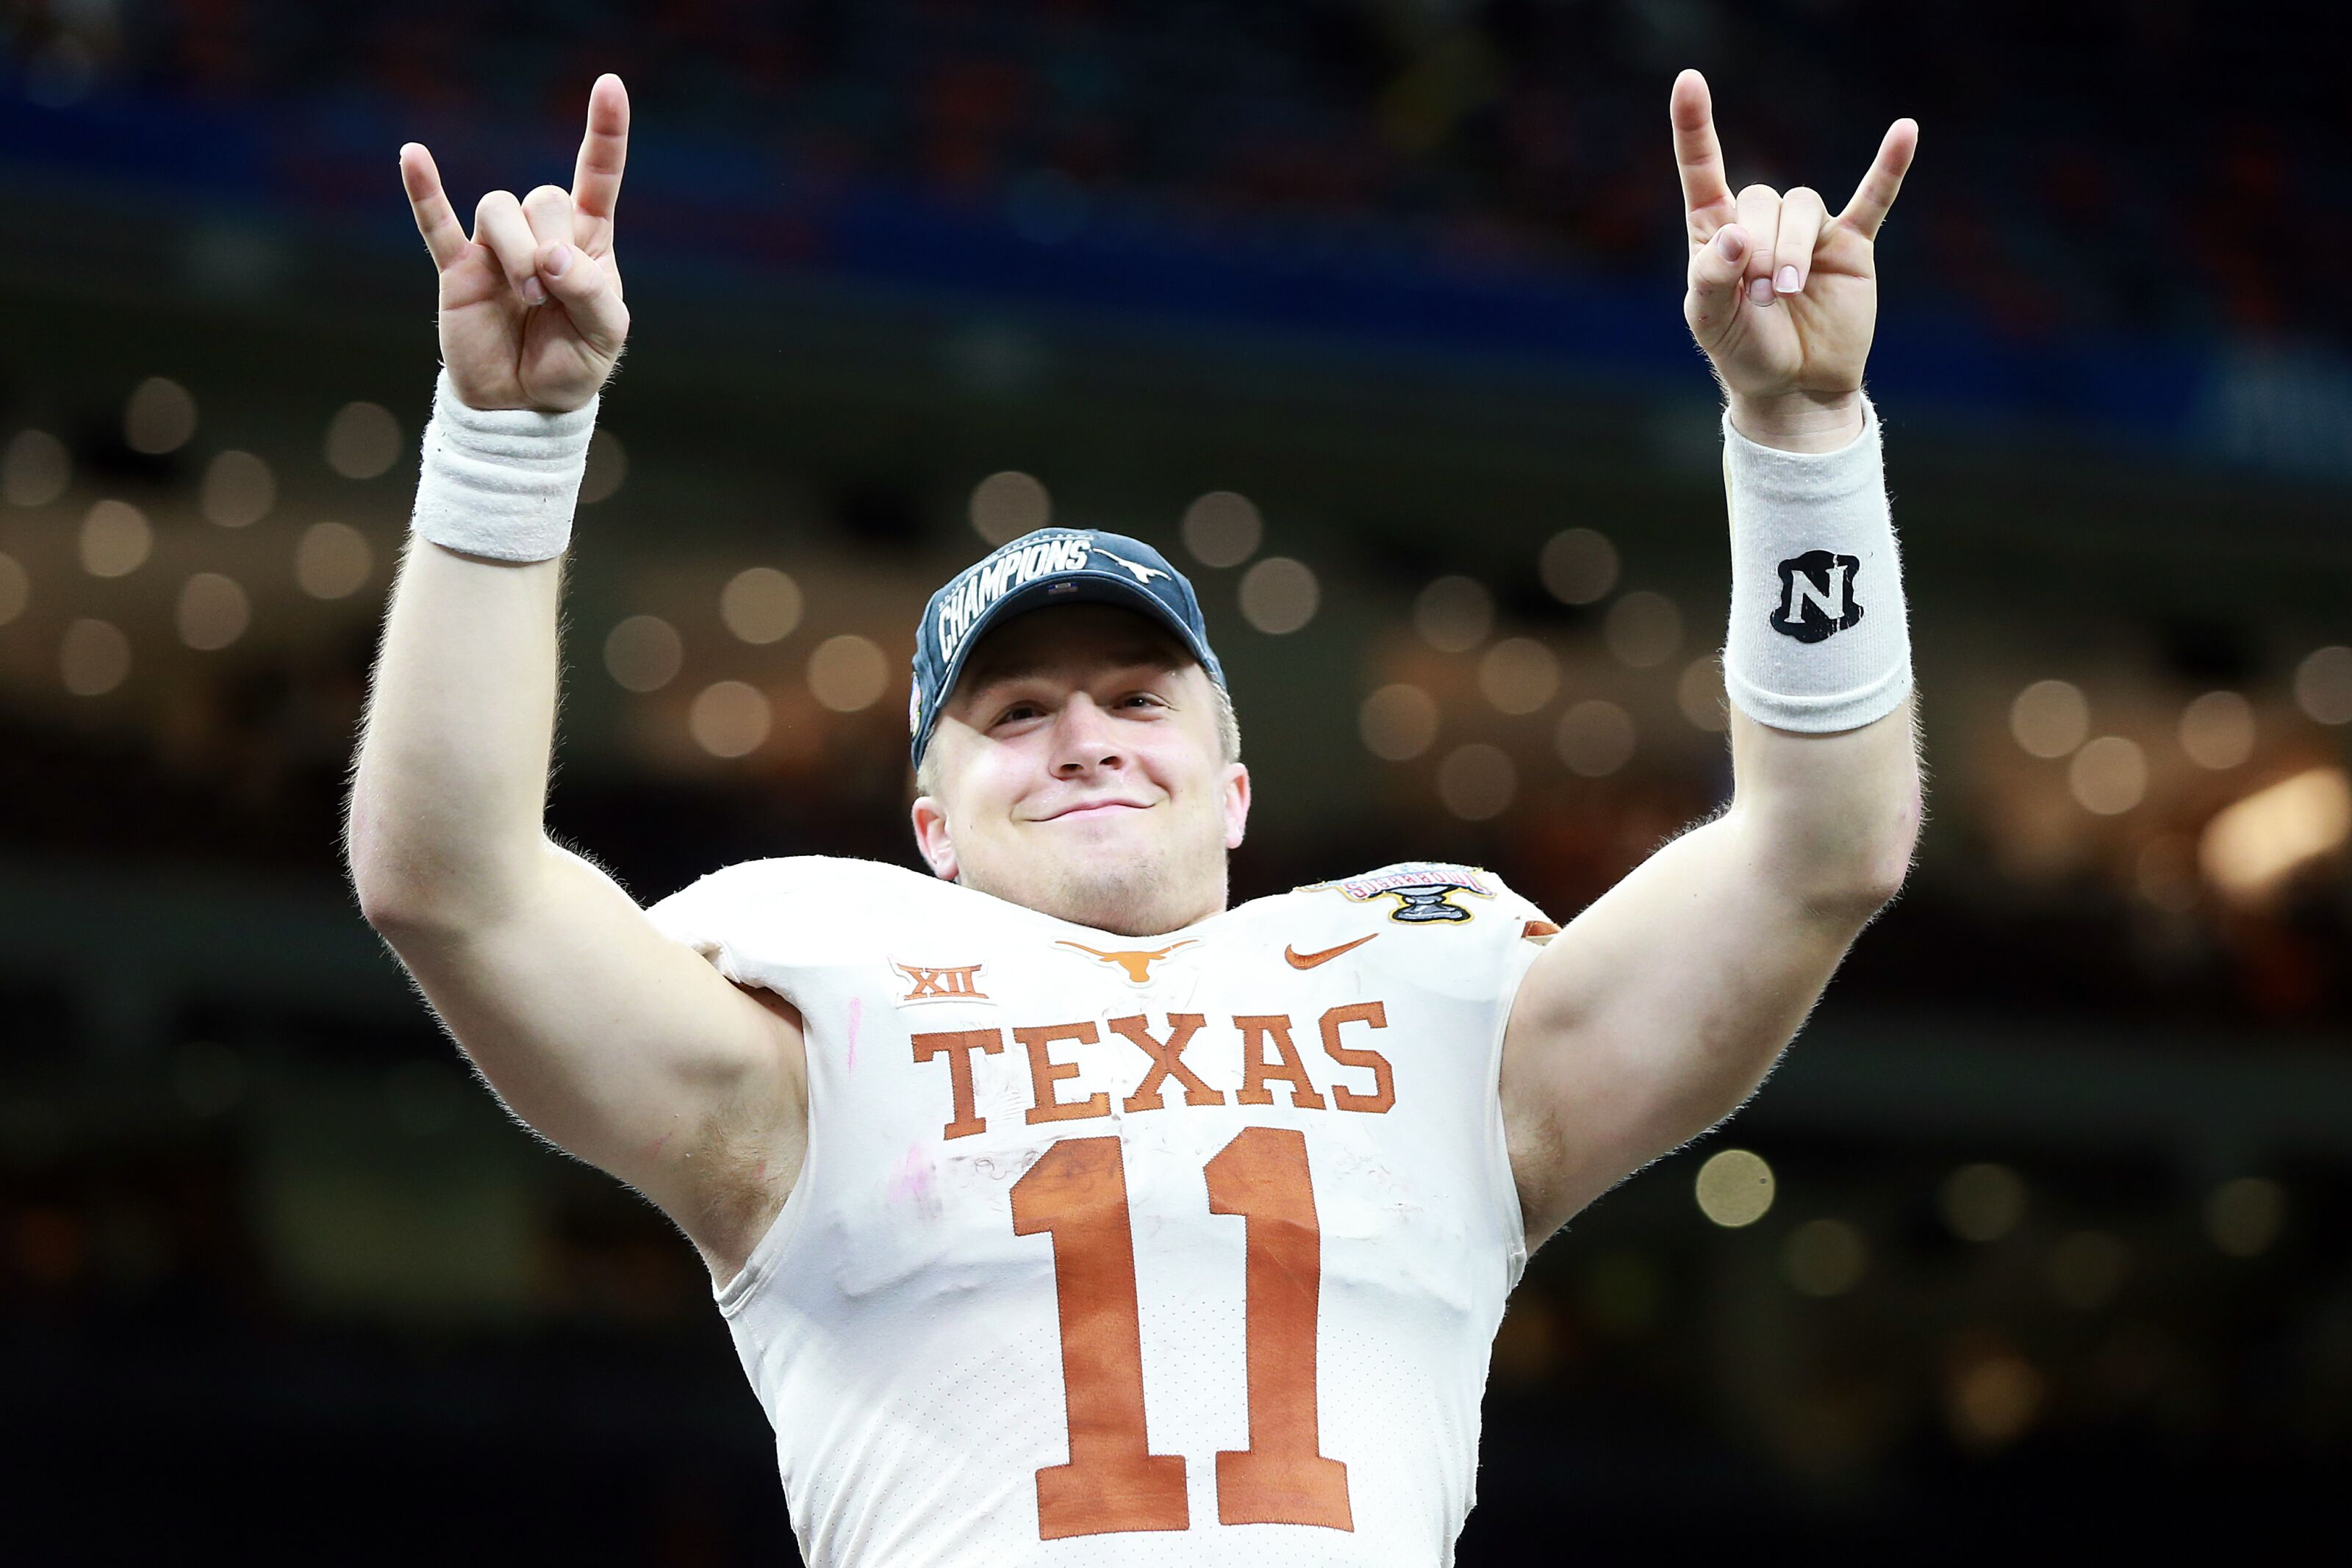 Texas Football: All pressure will be on Longhorns in crucial 2019 season